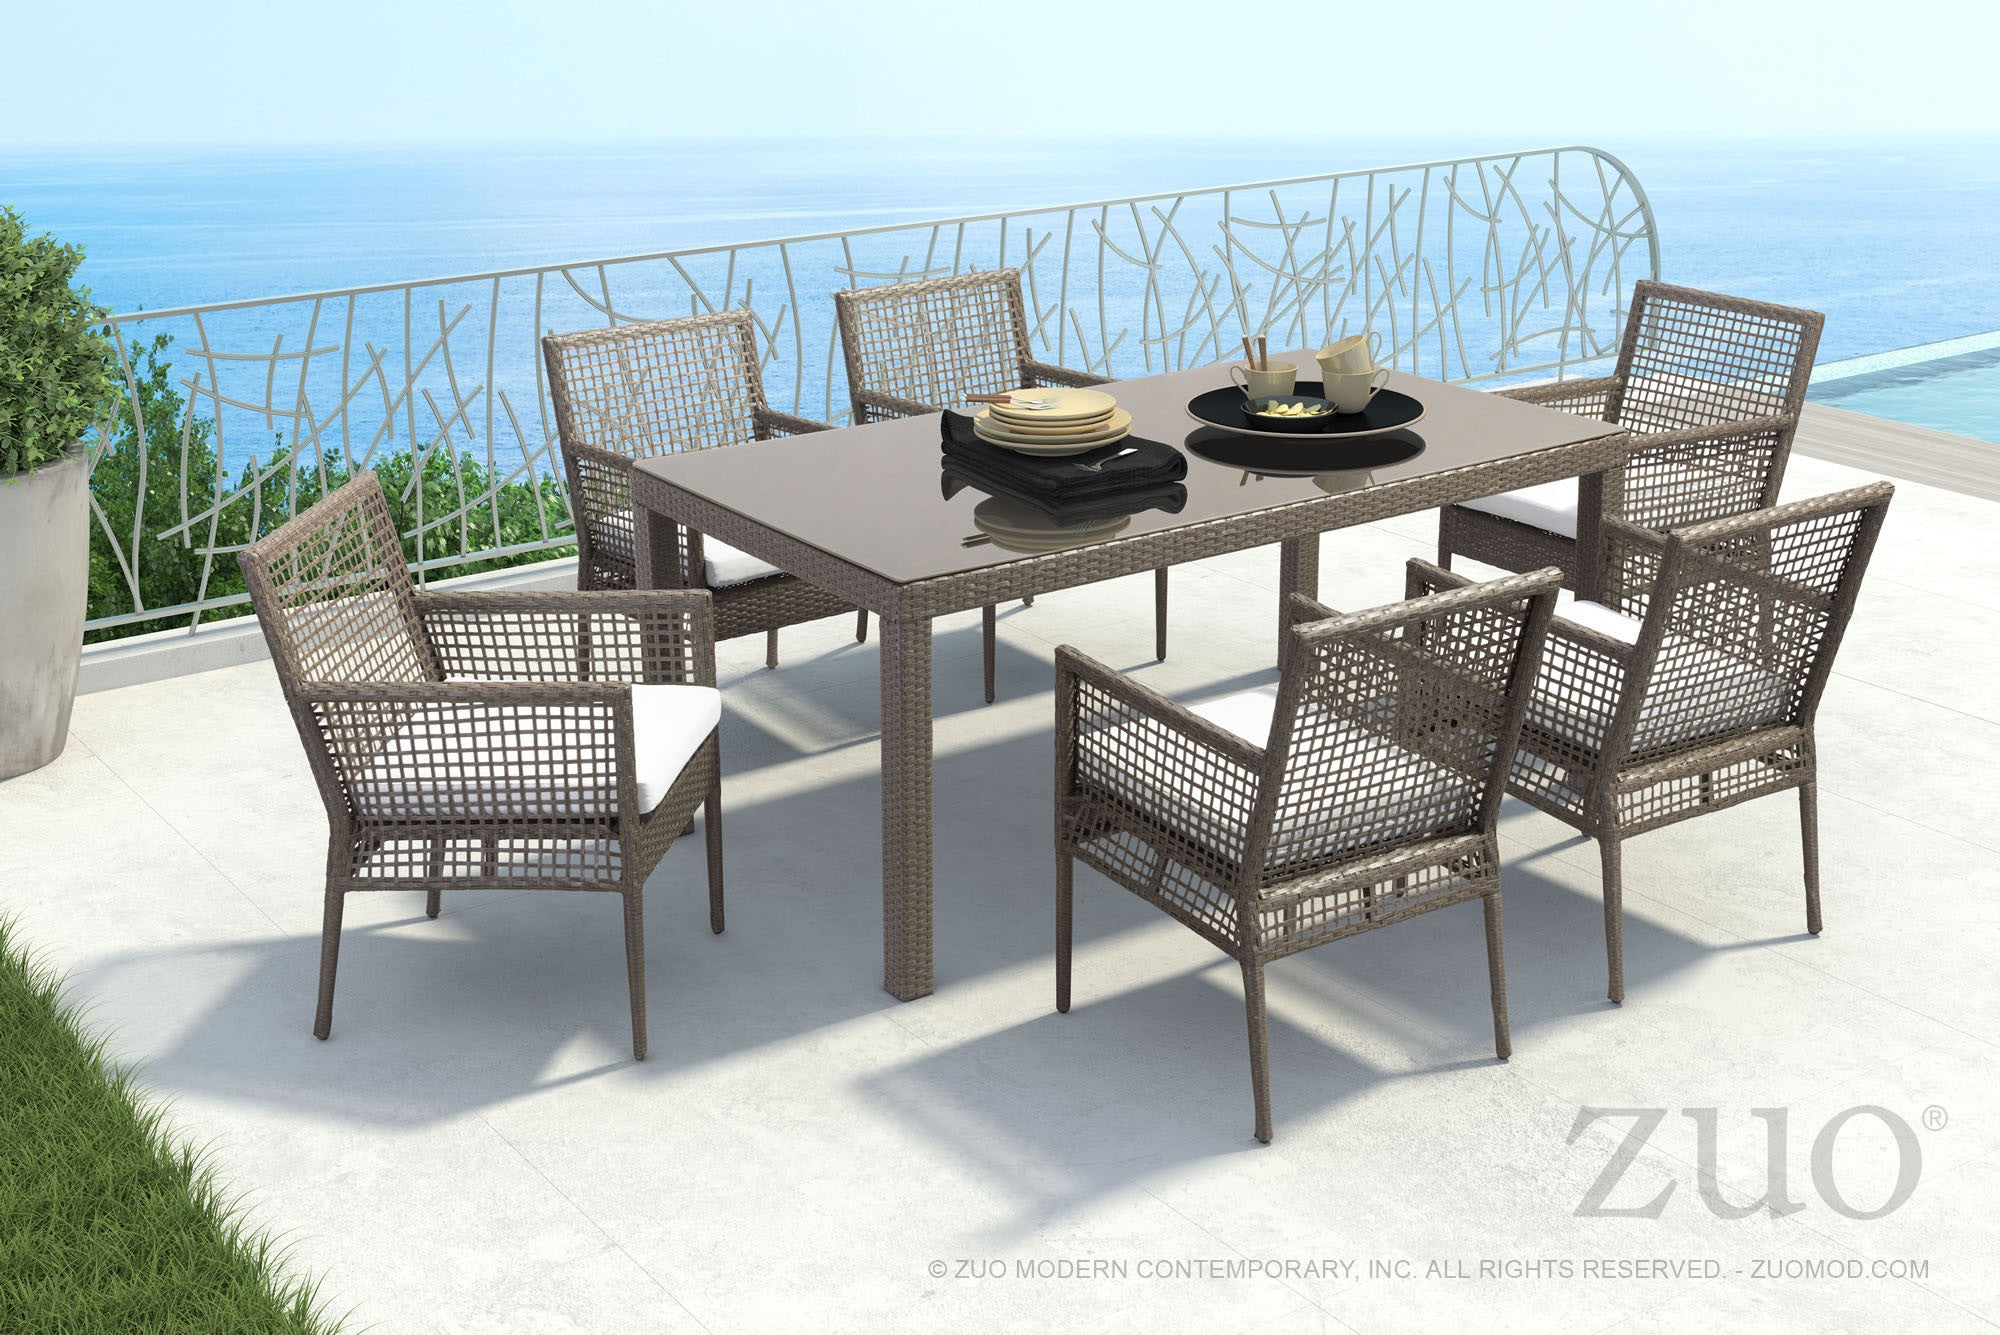 Coronado Patio Dining Table in Woven Cocoa Resin with Tempered Glass